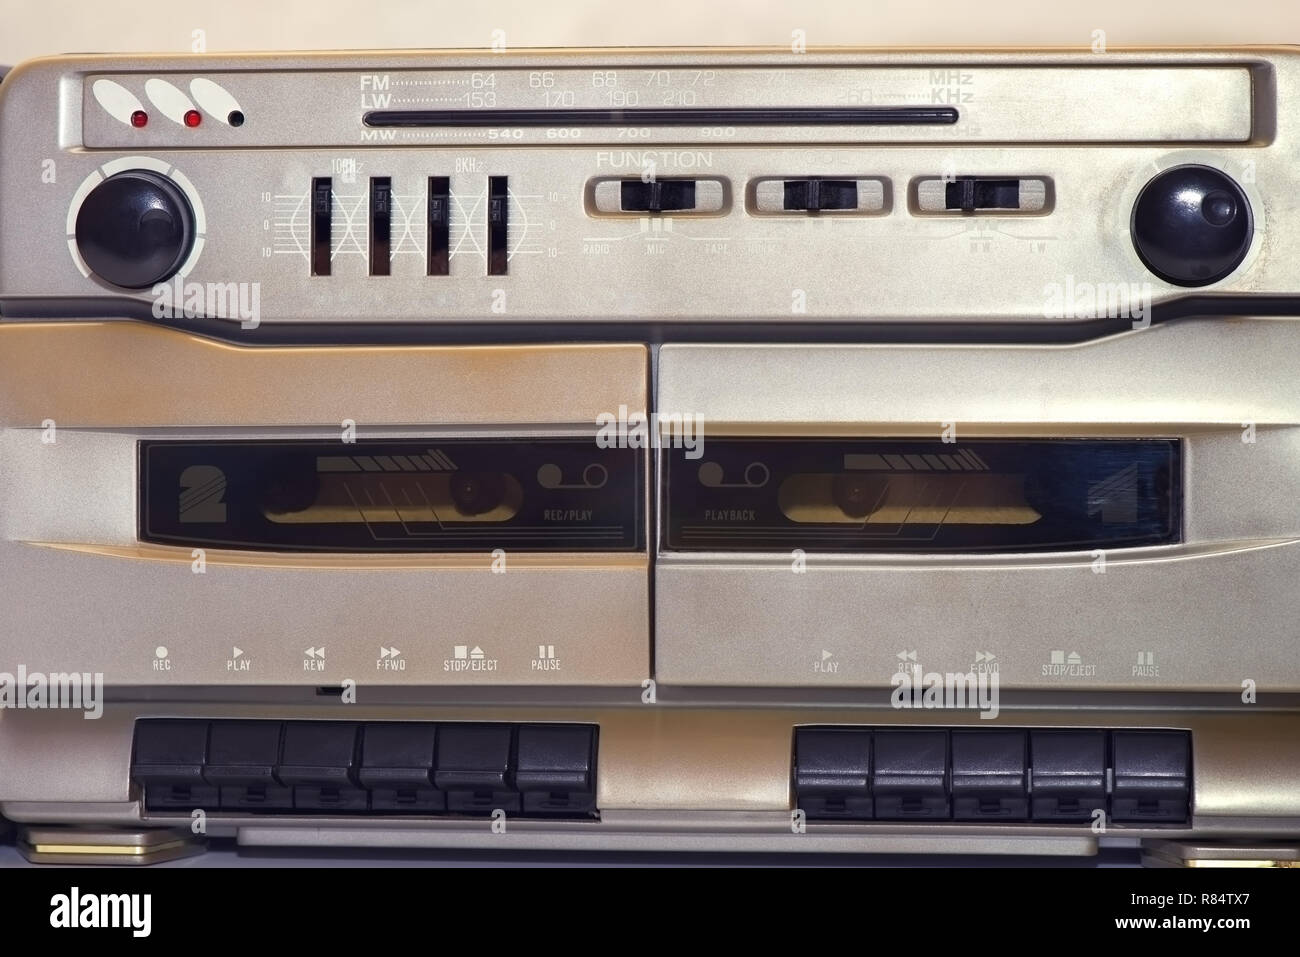 Vintage stereo radio cassette player, detail - Image - Stock Image